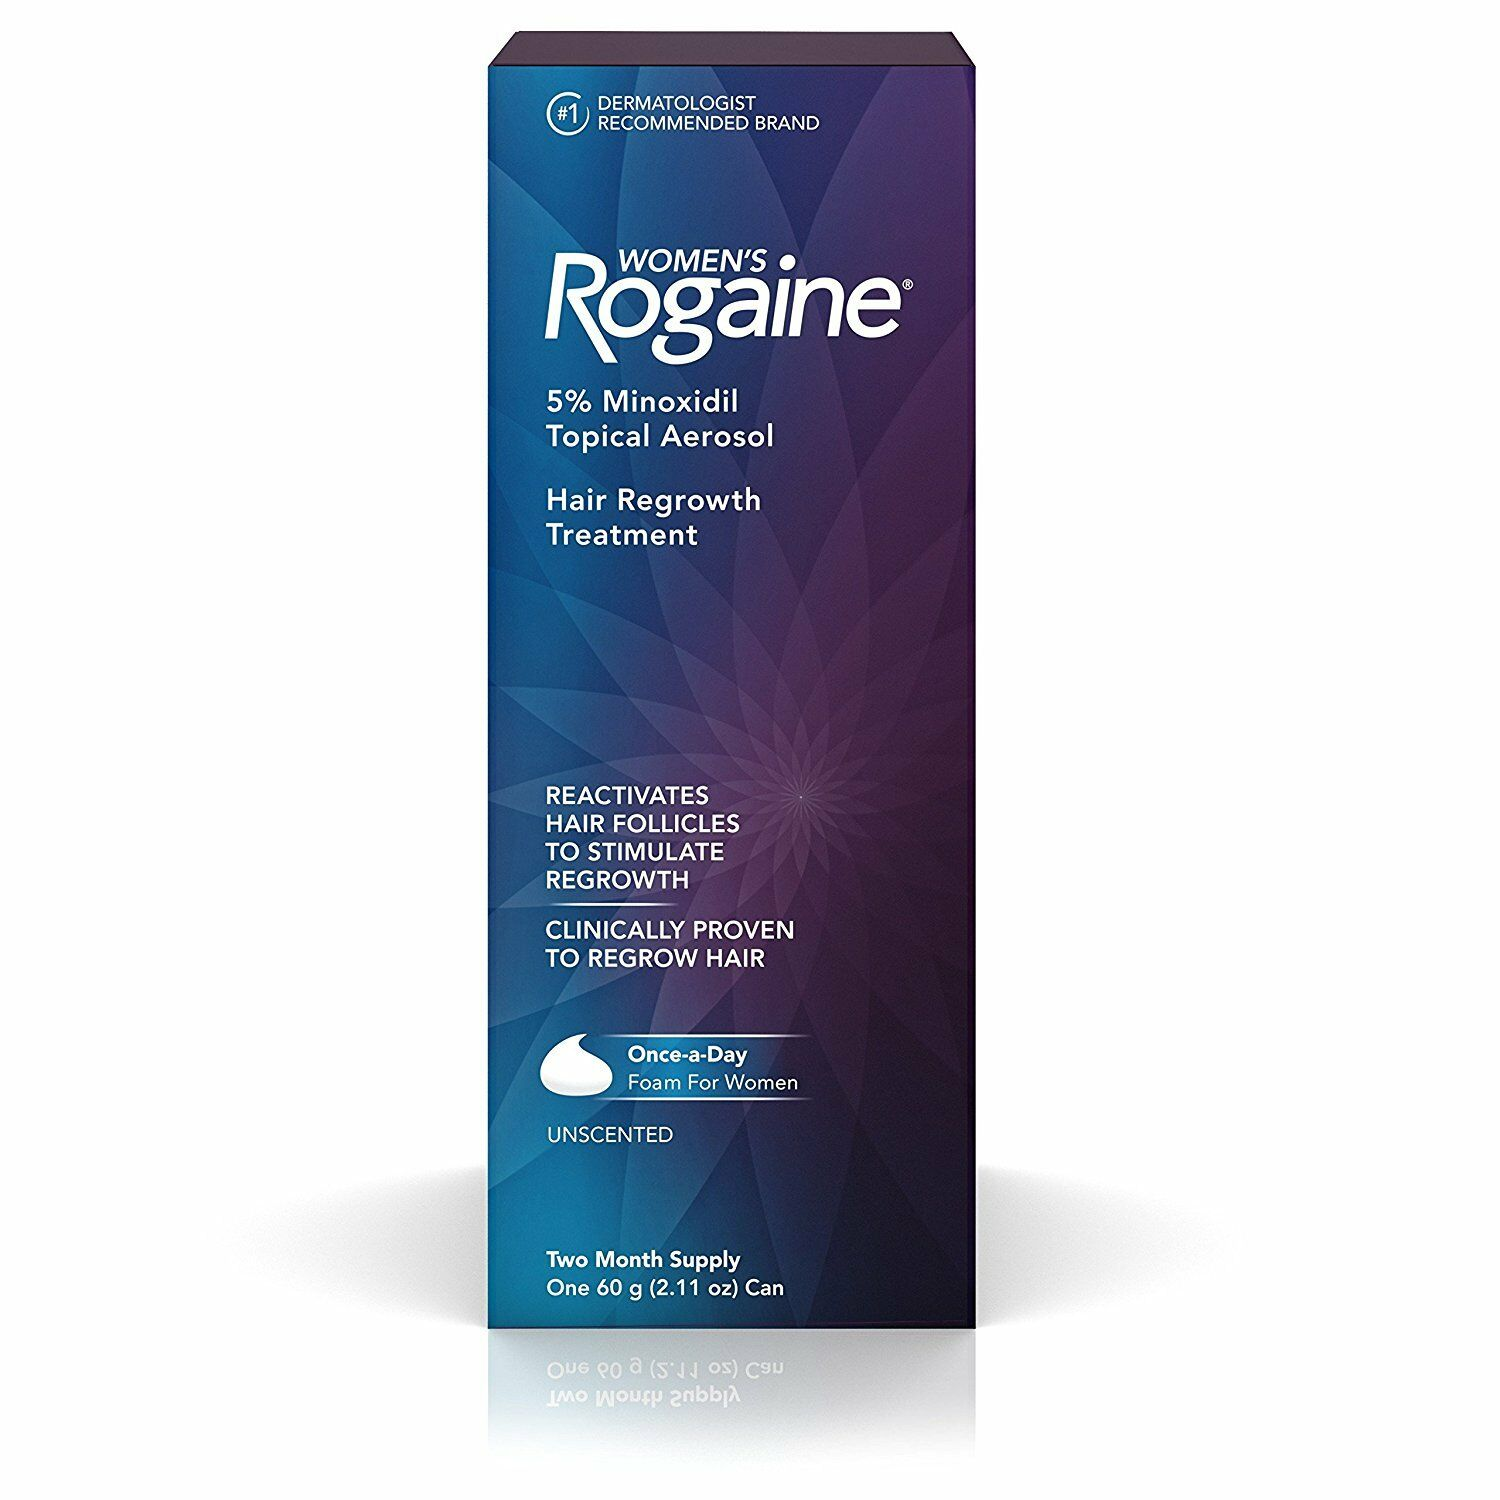 Rogaine Womens OnceADay Foam Two Month Supply Womens Once A